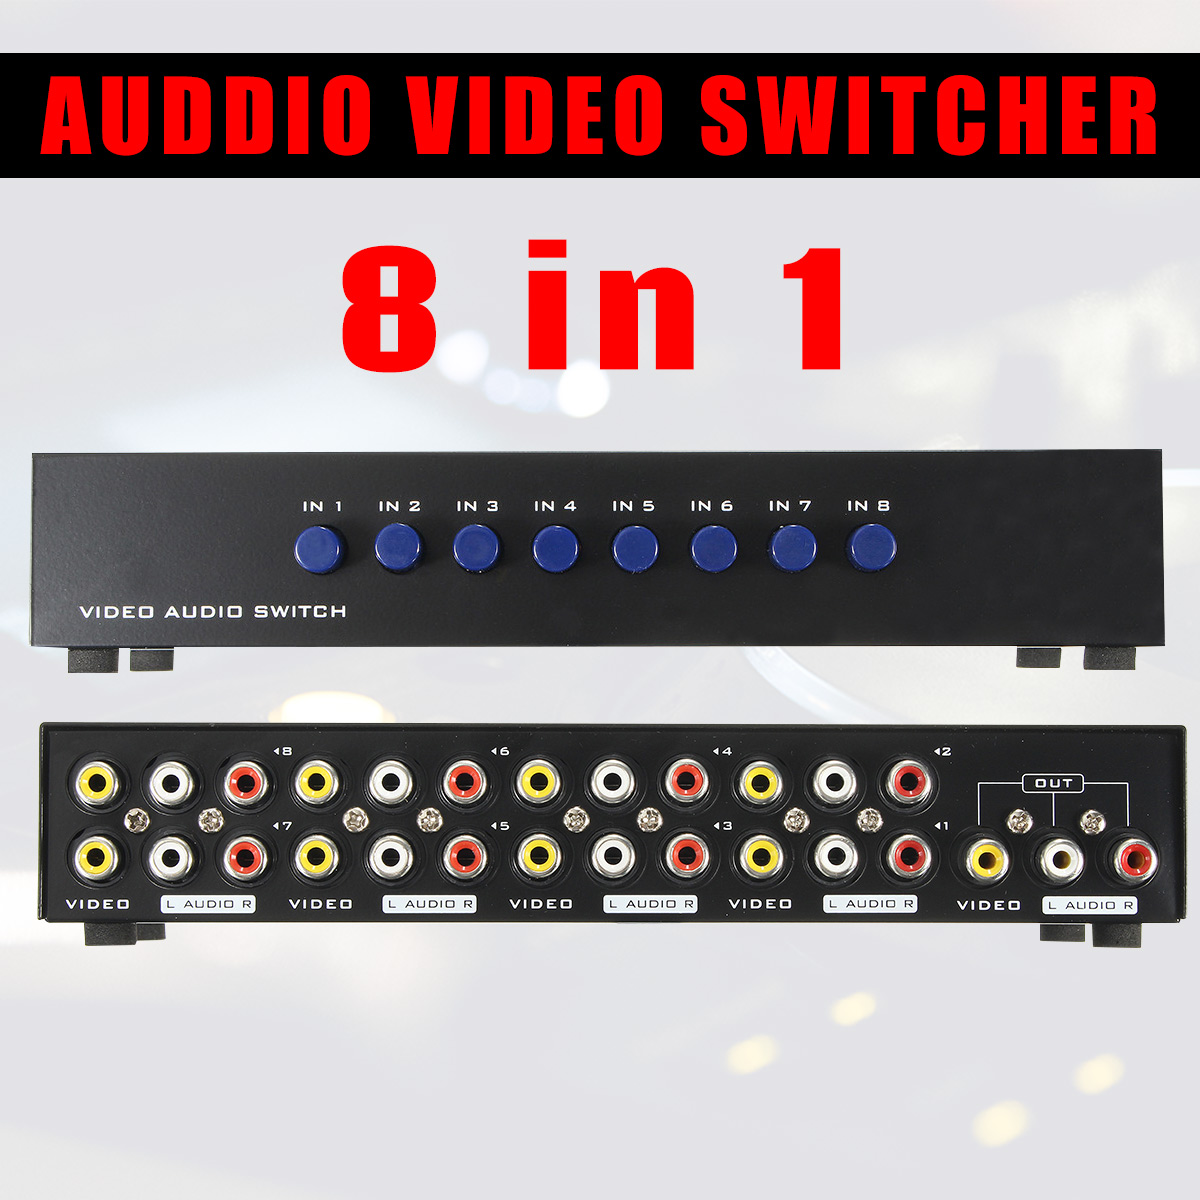 AV Switch Box 8 Ports Composite 3 RCA Video Audio AV Switch Switcher Box Selector 8 In 1 Out 8x1 for HDTV LCD Projector DVDAV Switch Box 8 Ports Composite 3 RCA Video Audio AV Switch Switcher Box Selector 8 In 1 Out 8x1 for HDTV LCD Projector DVD